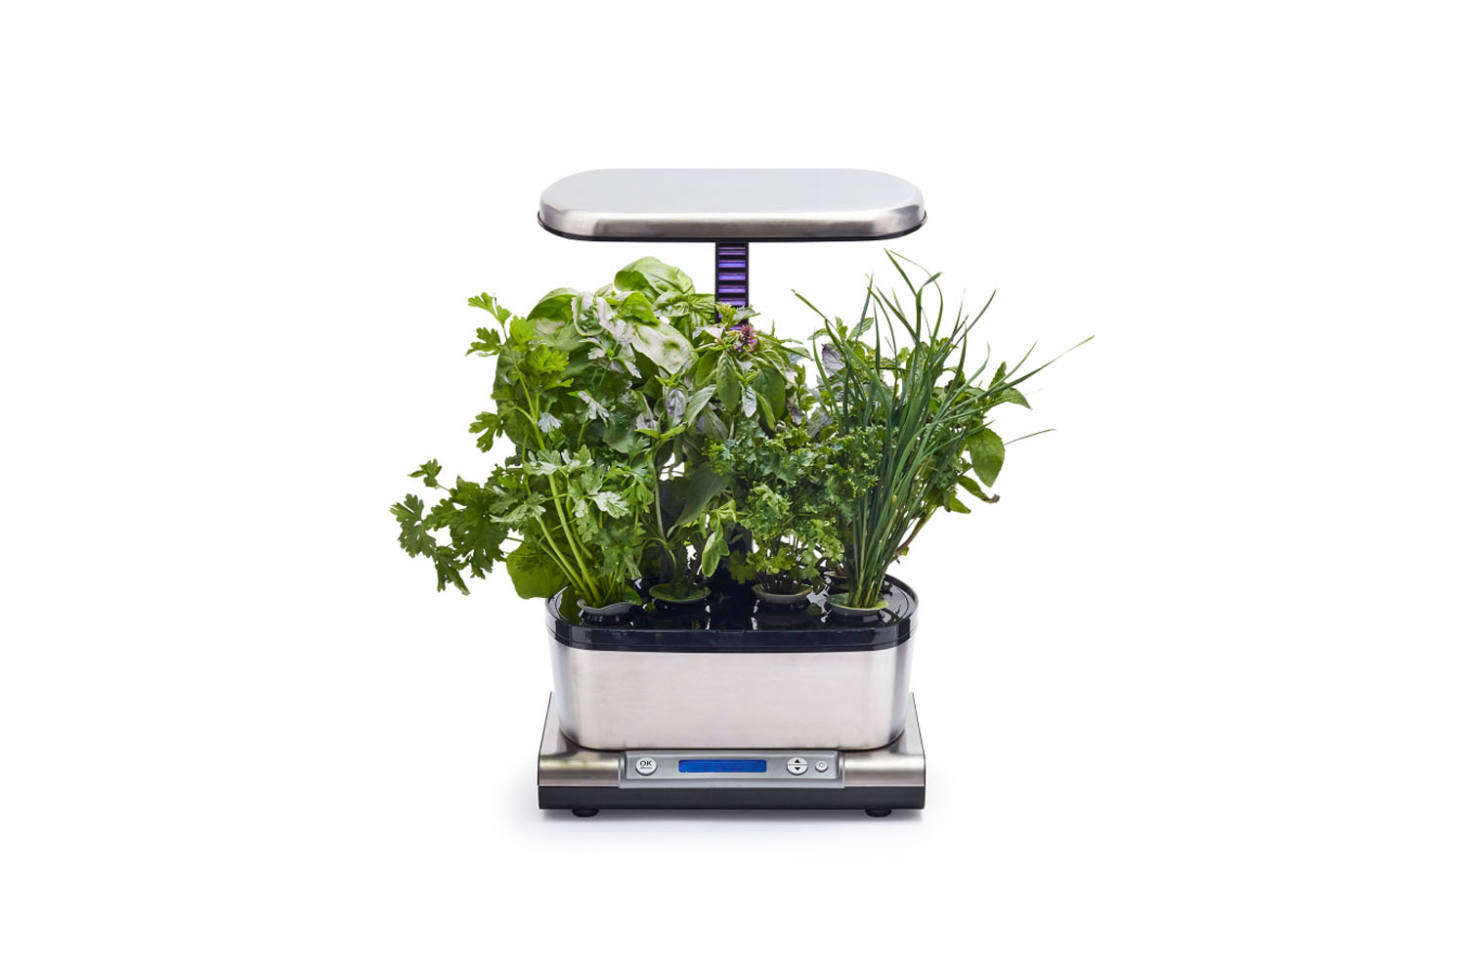 The AeroGarden Harvest Elite WiFi with a Gourmet Herbs Seeds Pod Kit is soil-free and works with high-performance LED lights for optimal growing (white light for rapid growth, blue for larger yields, and red for more flowers and fruit). The interactive LCD display guides you through the growing process via your own smart device. It&#8